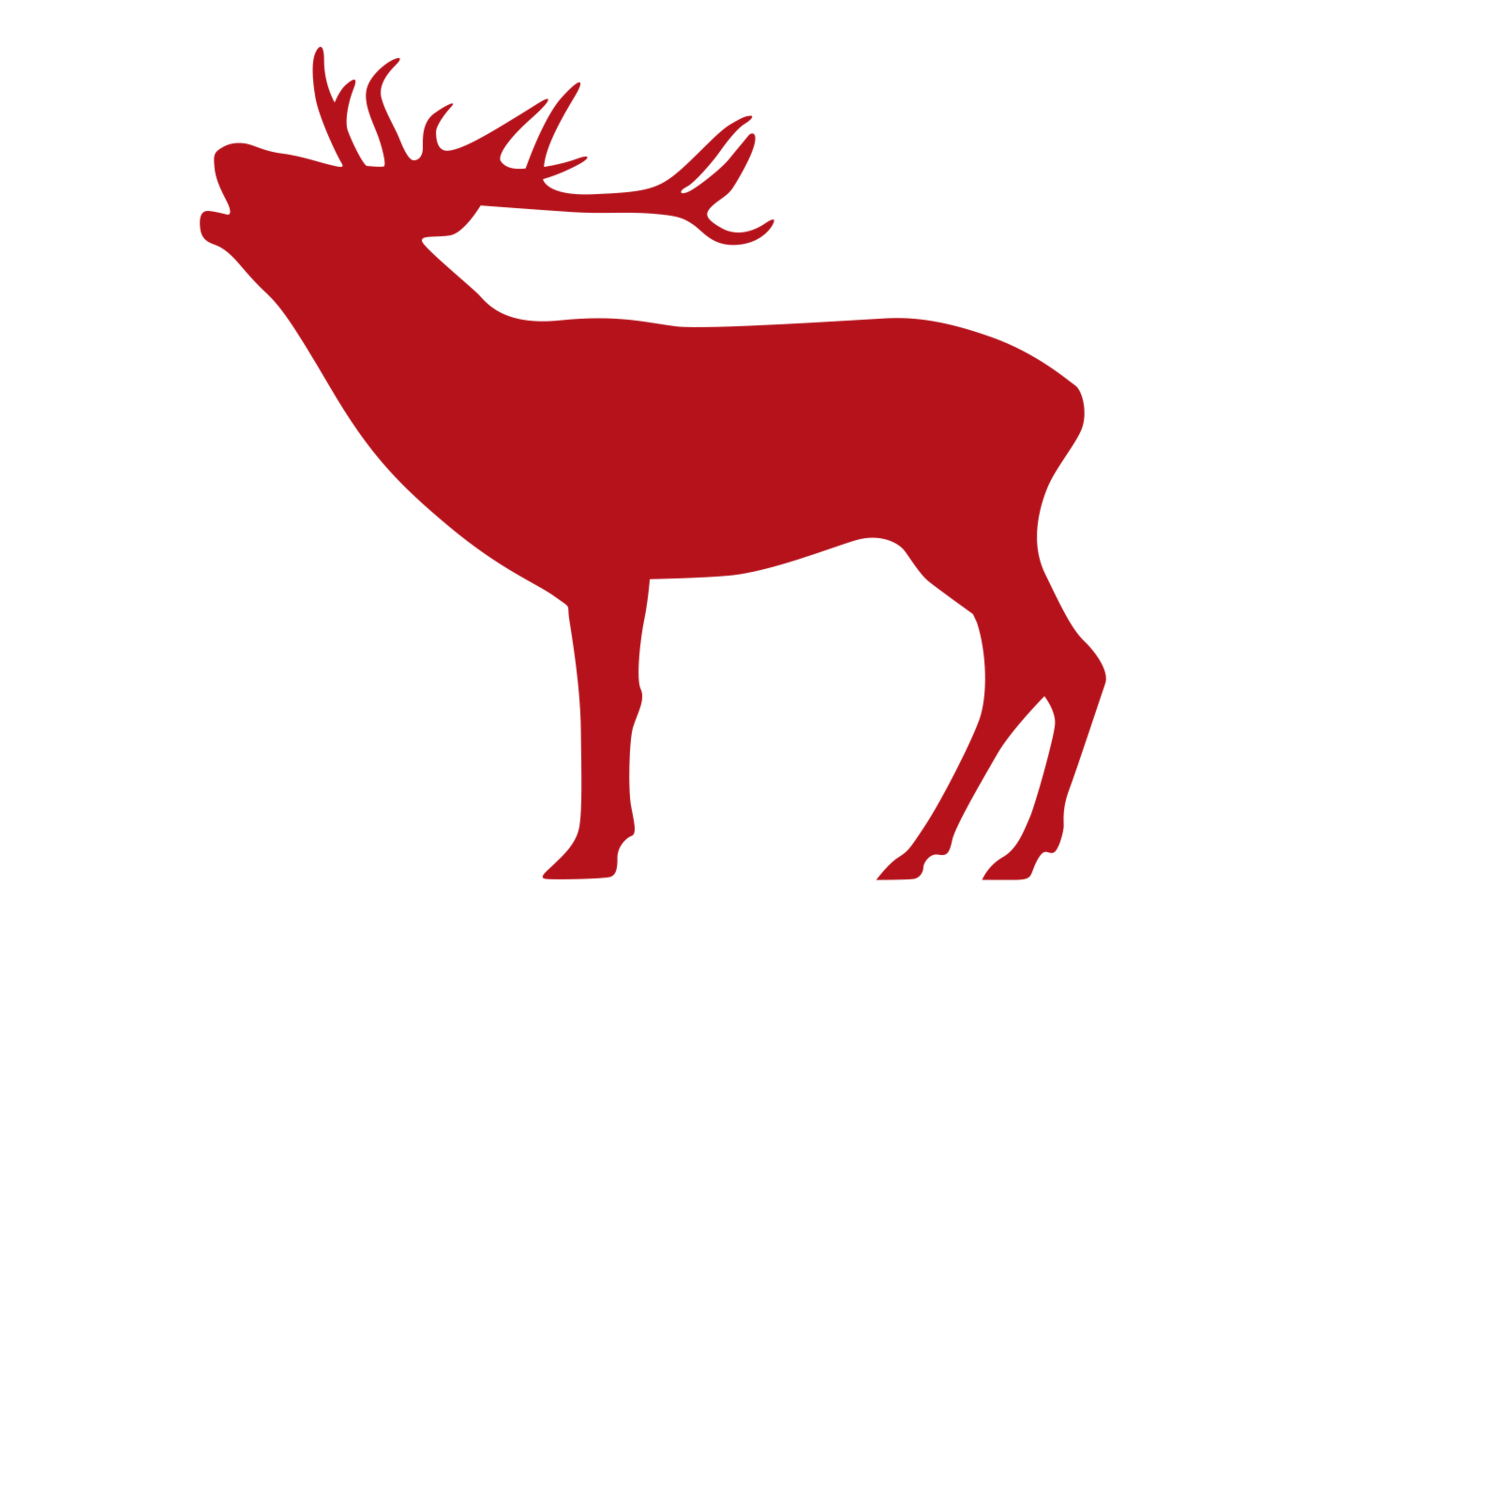 Crafted Ireland - Custom Tours